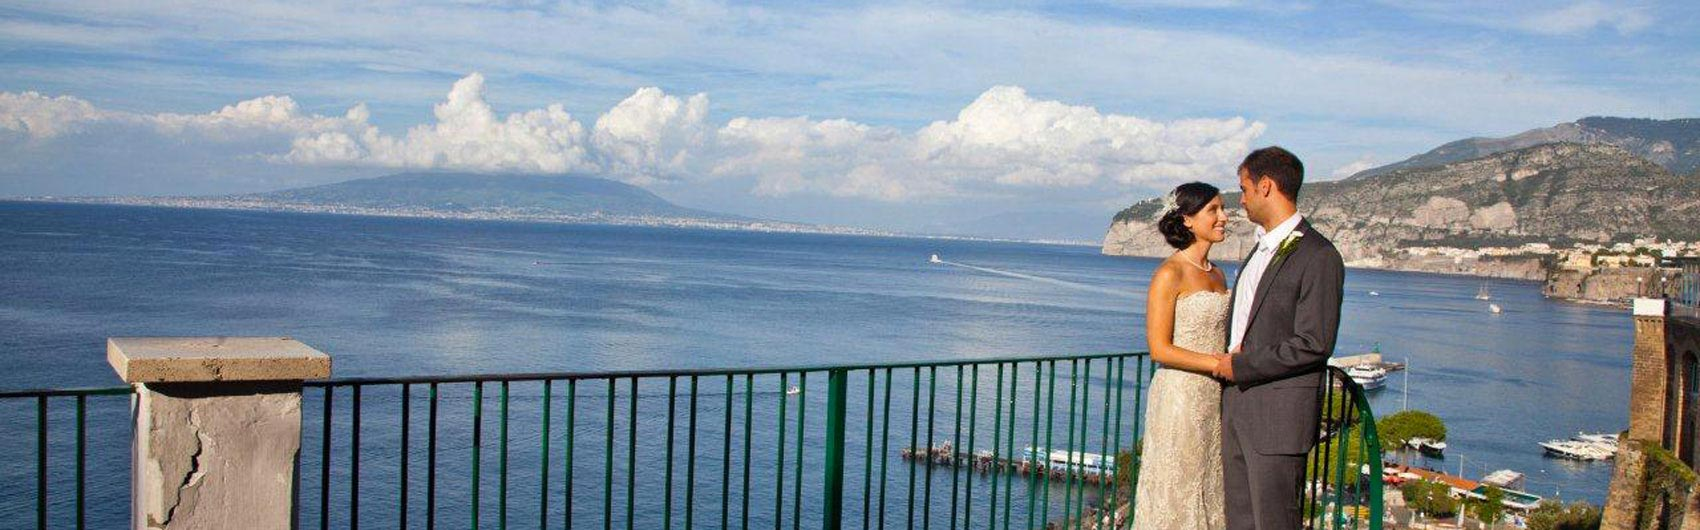 sorrento-weddings-itay